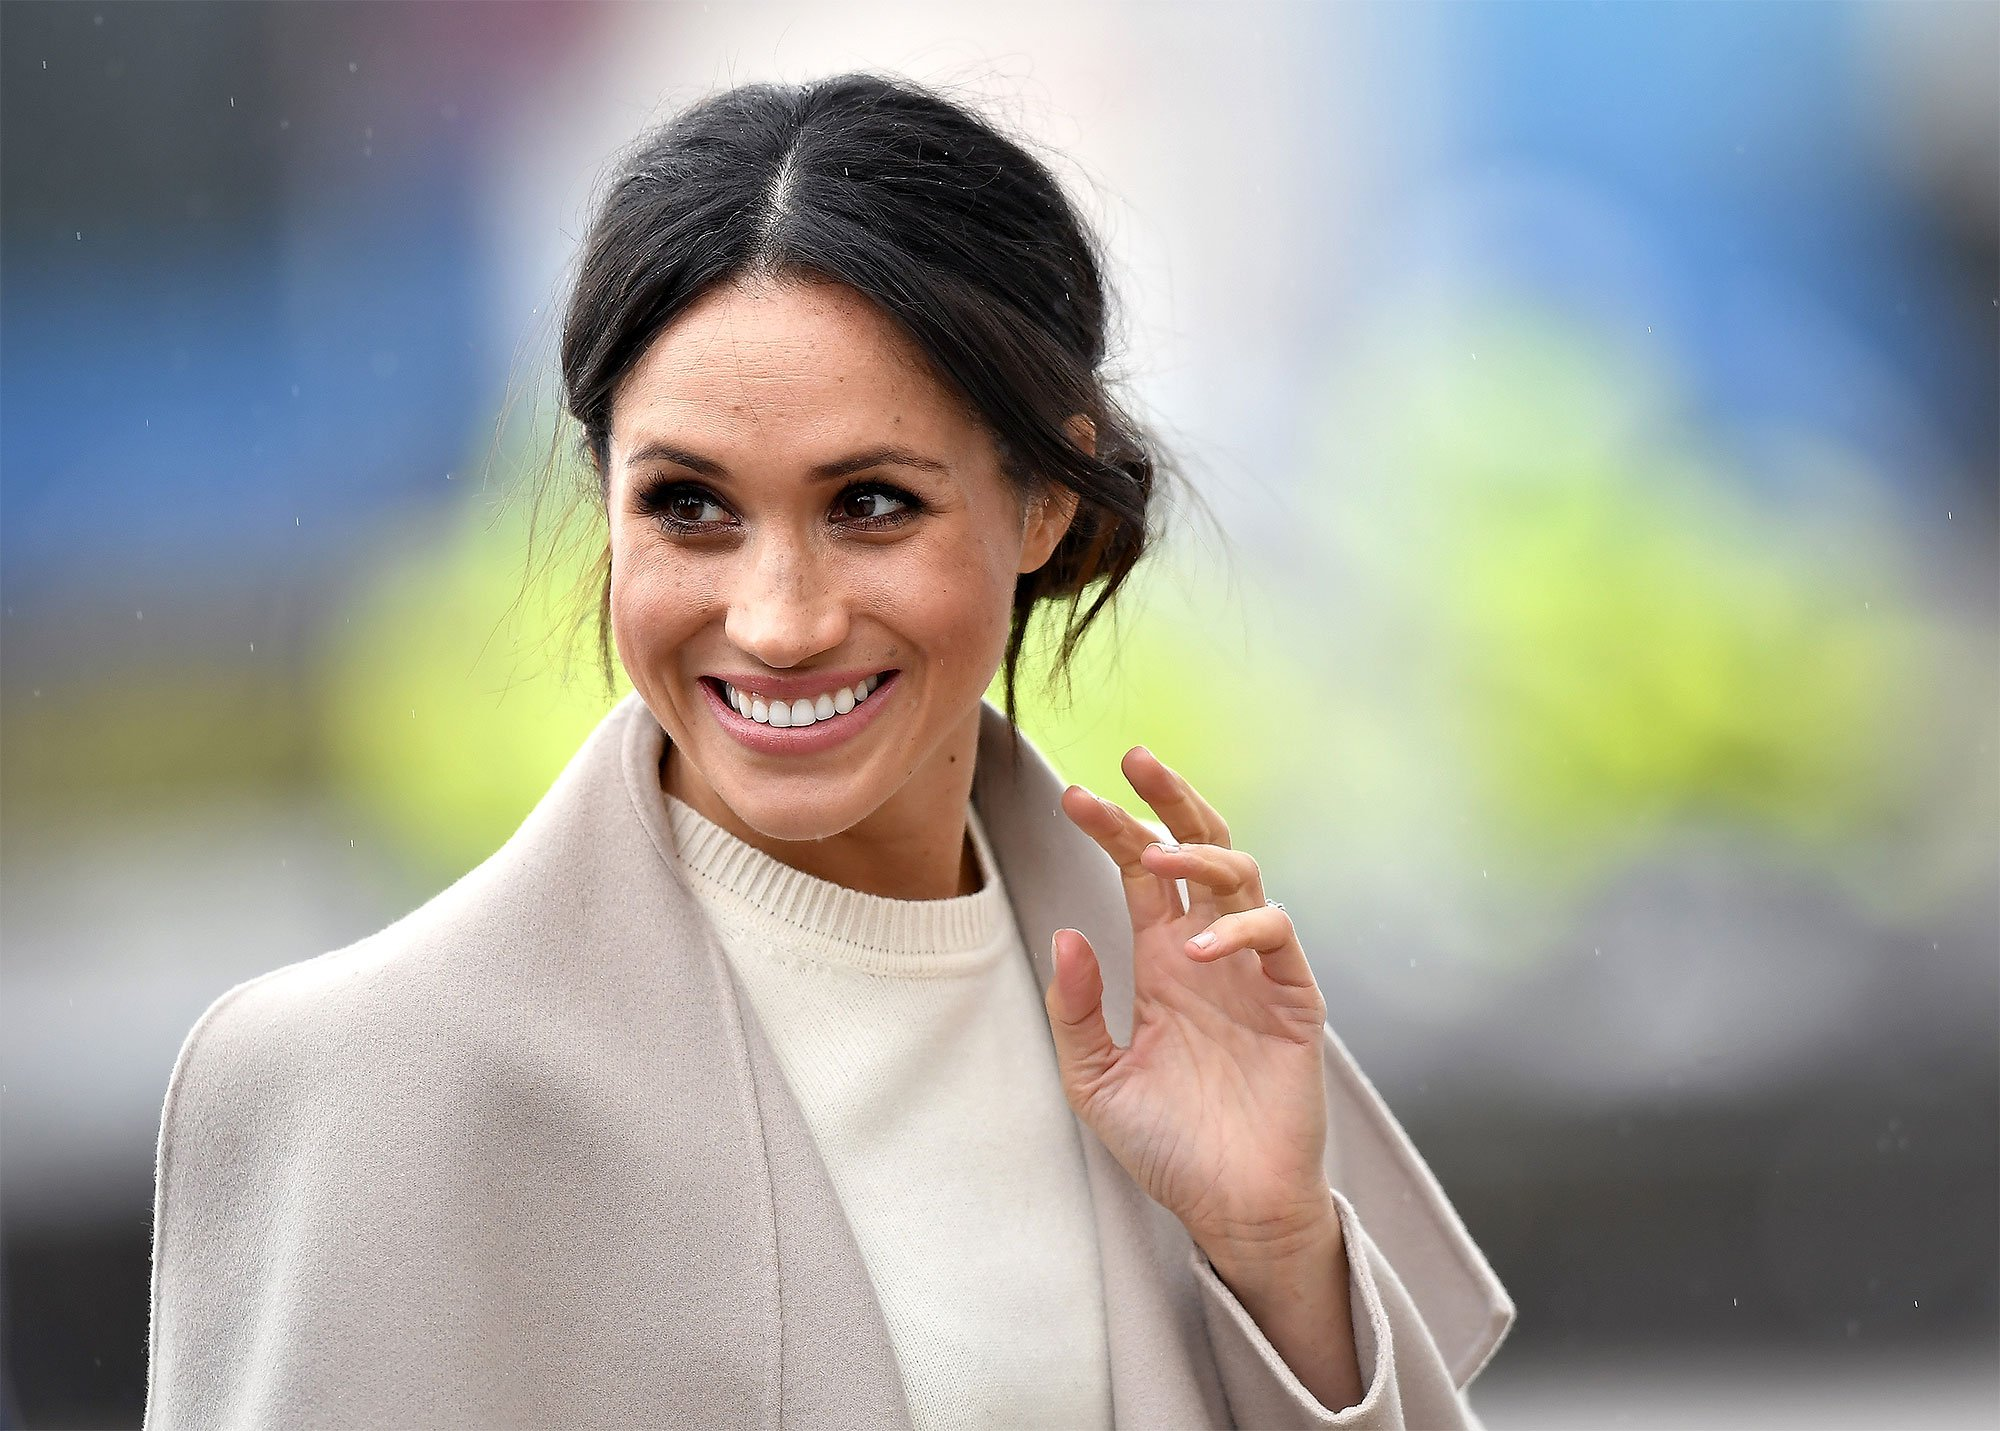 While you were asleep: Donald says something, Adult entertainment goes viral, Marie Claire outs Markle